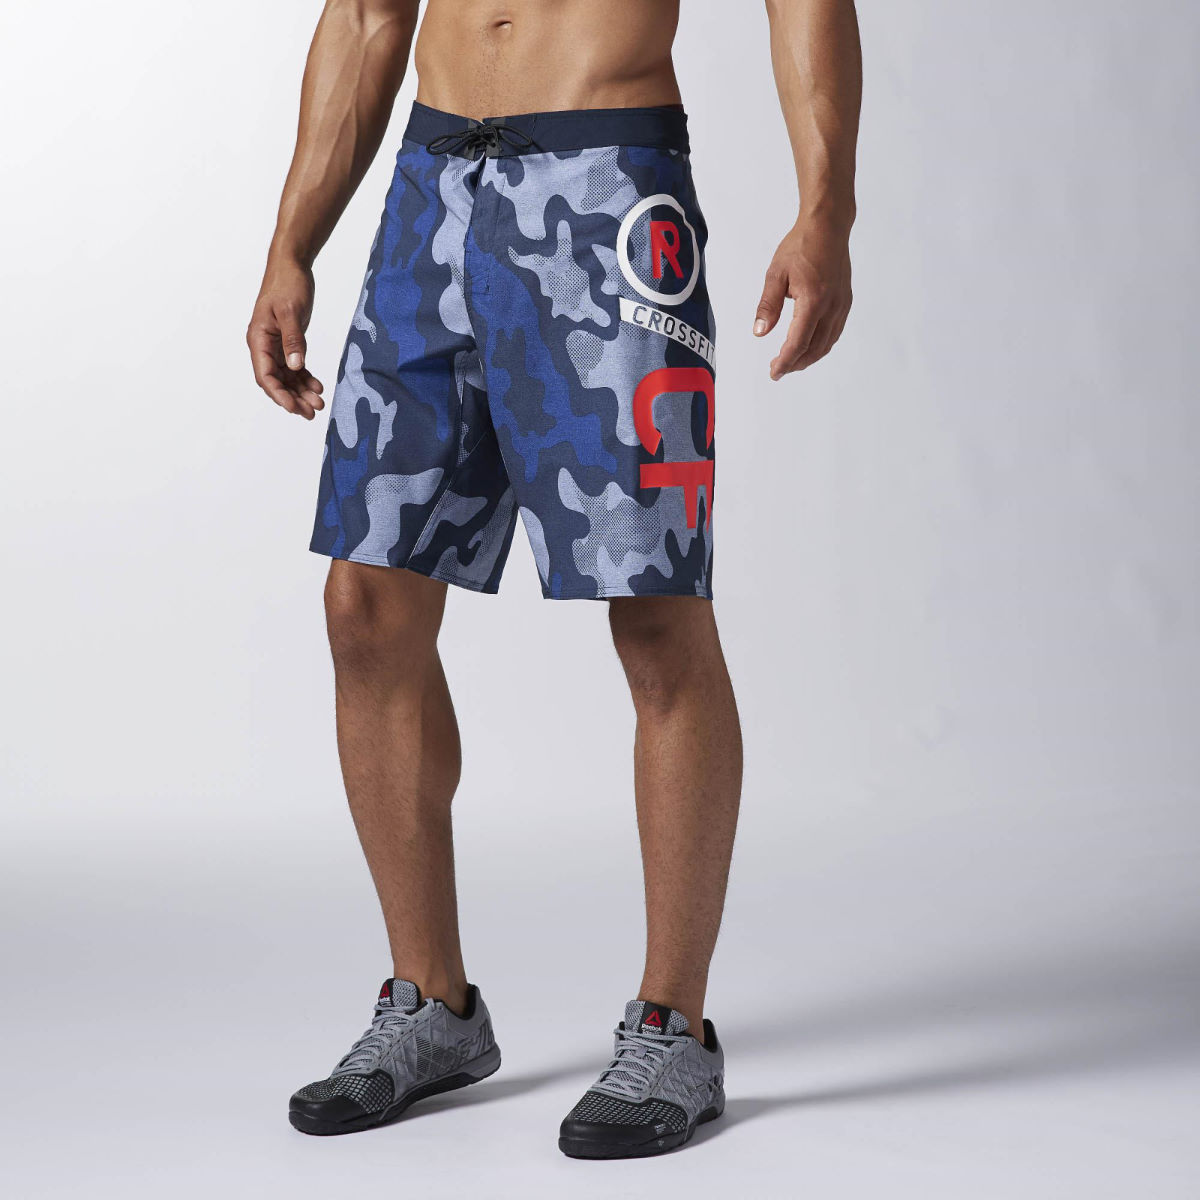 Reebok Cross Fit Board Short -  - Medium Faux Indigo